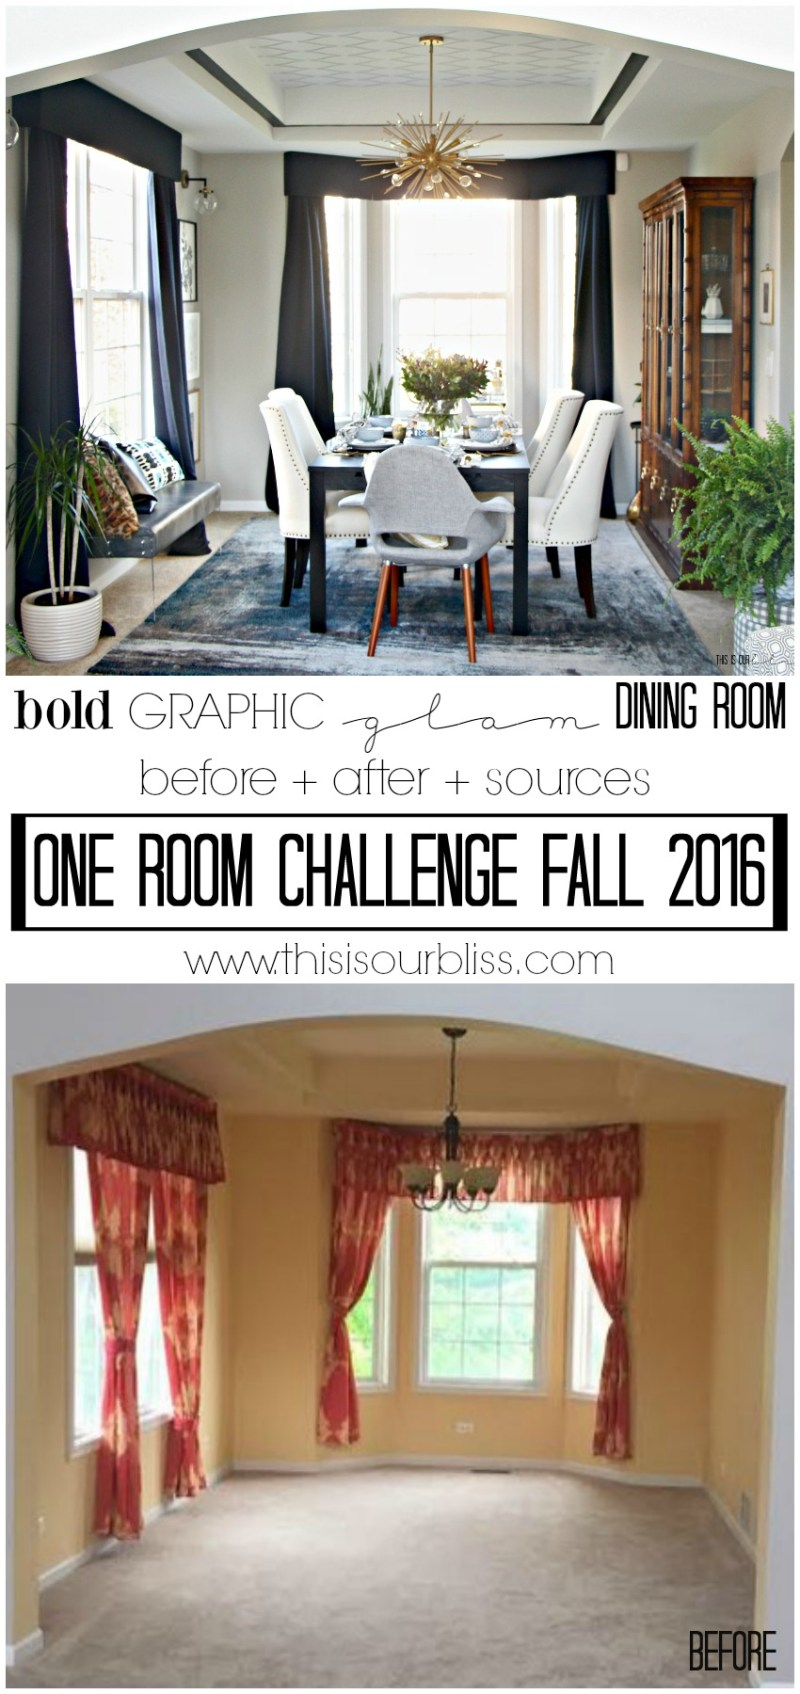 Before & After | Bold Graphic Glam Dining Room Makeover | One Room Challenge Fall 2016 | This is our Bliss | www.thisisourbliss.com